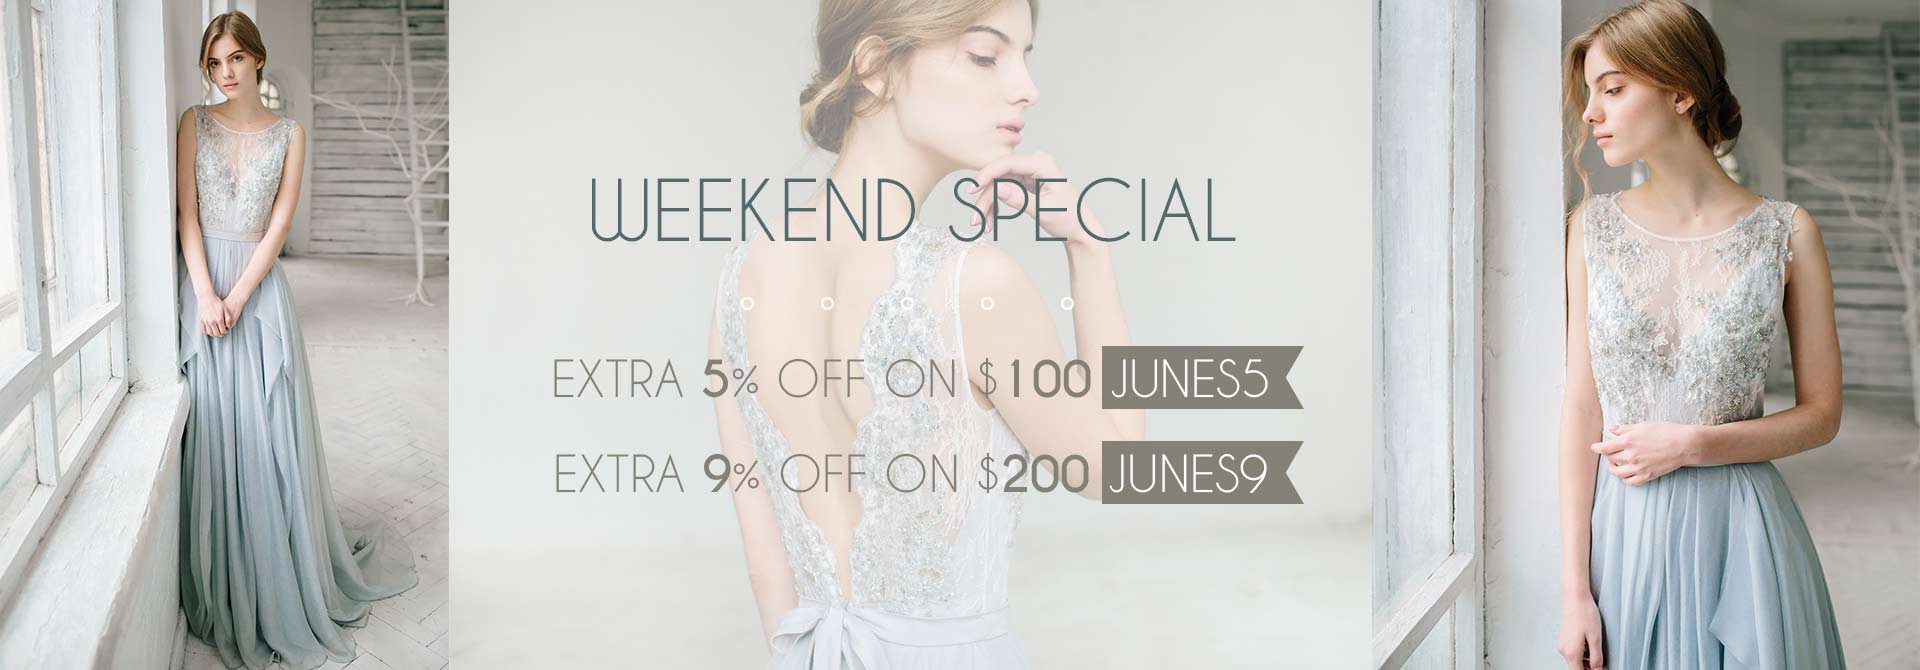 Extra 5% Off on $100 JUNES5